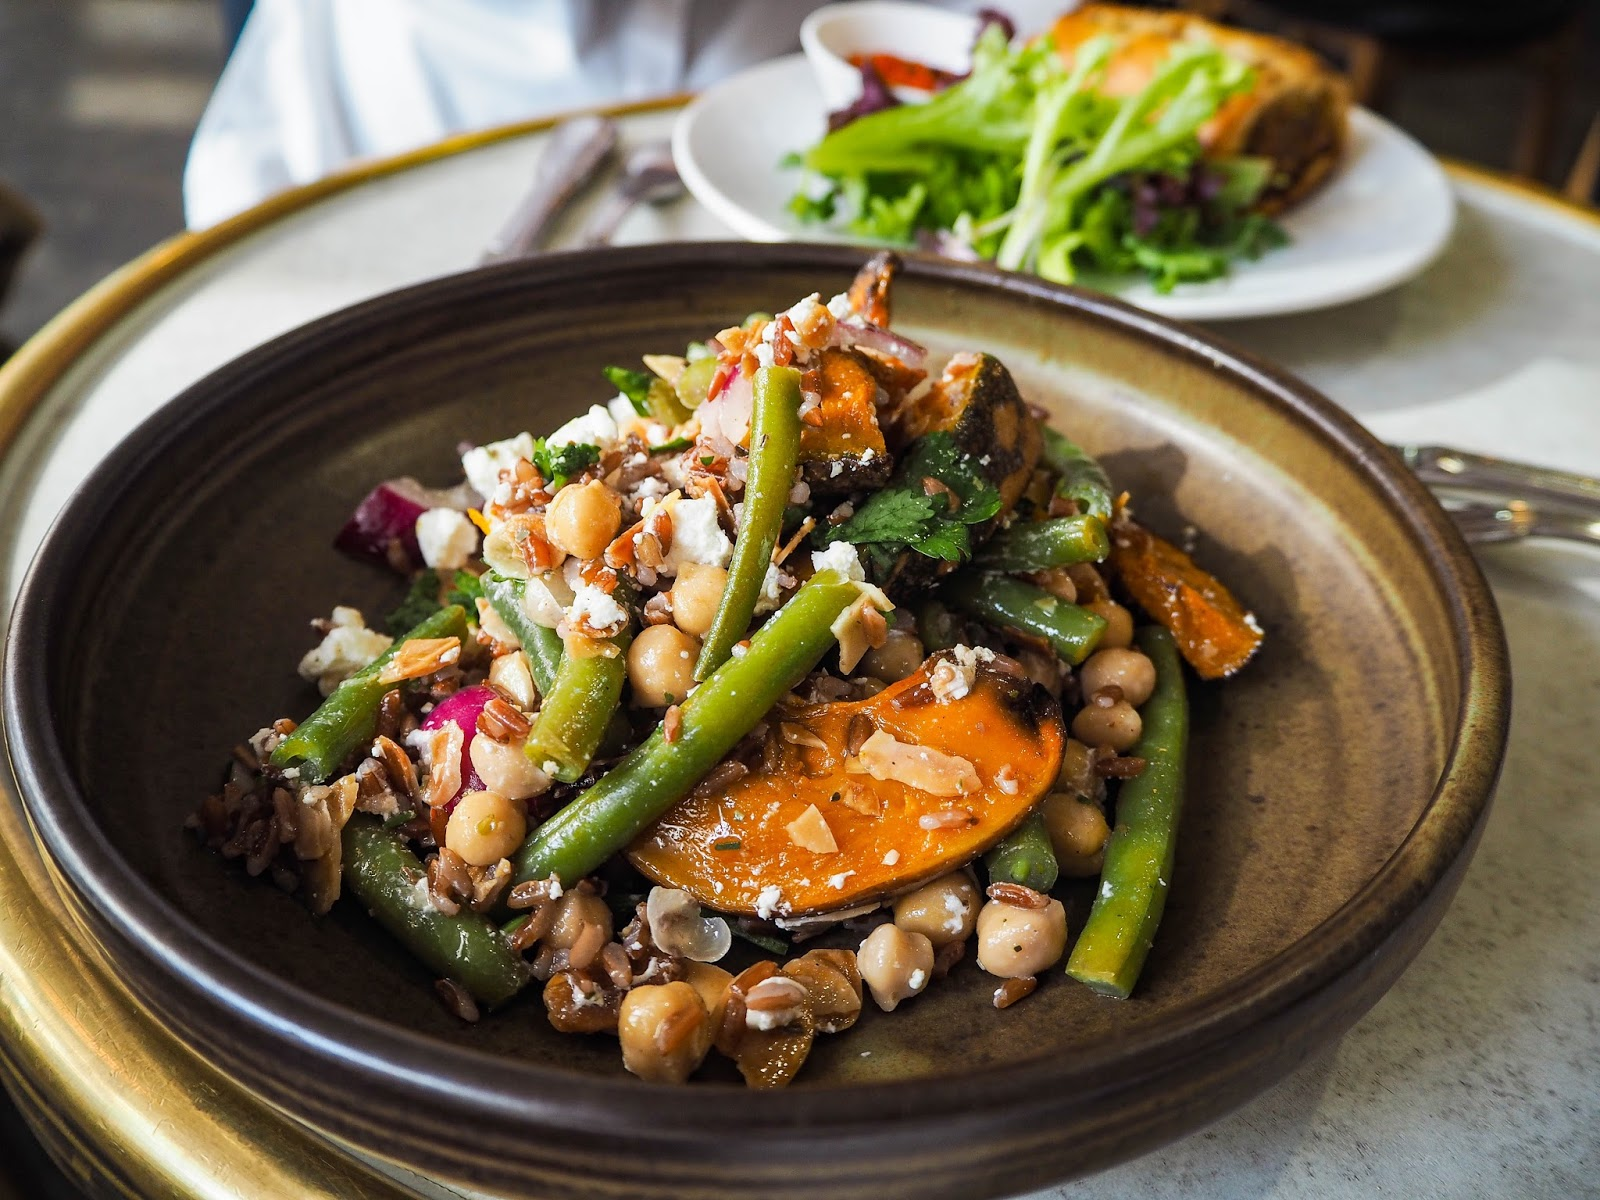 Pumpkin and green bean salad